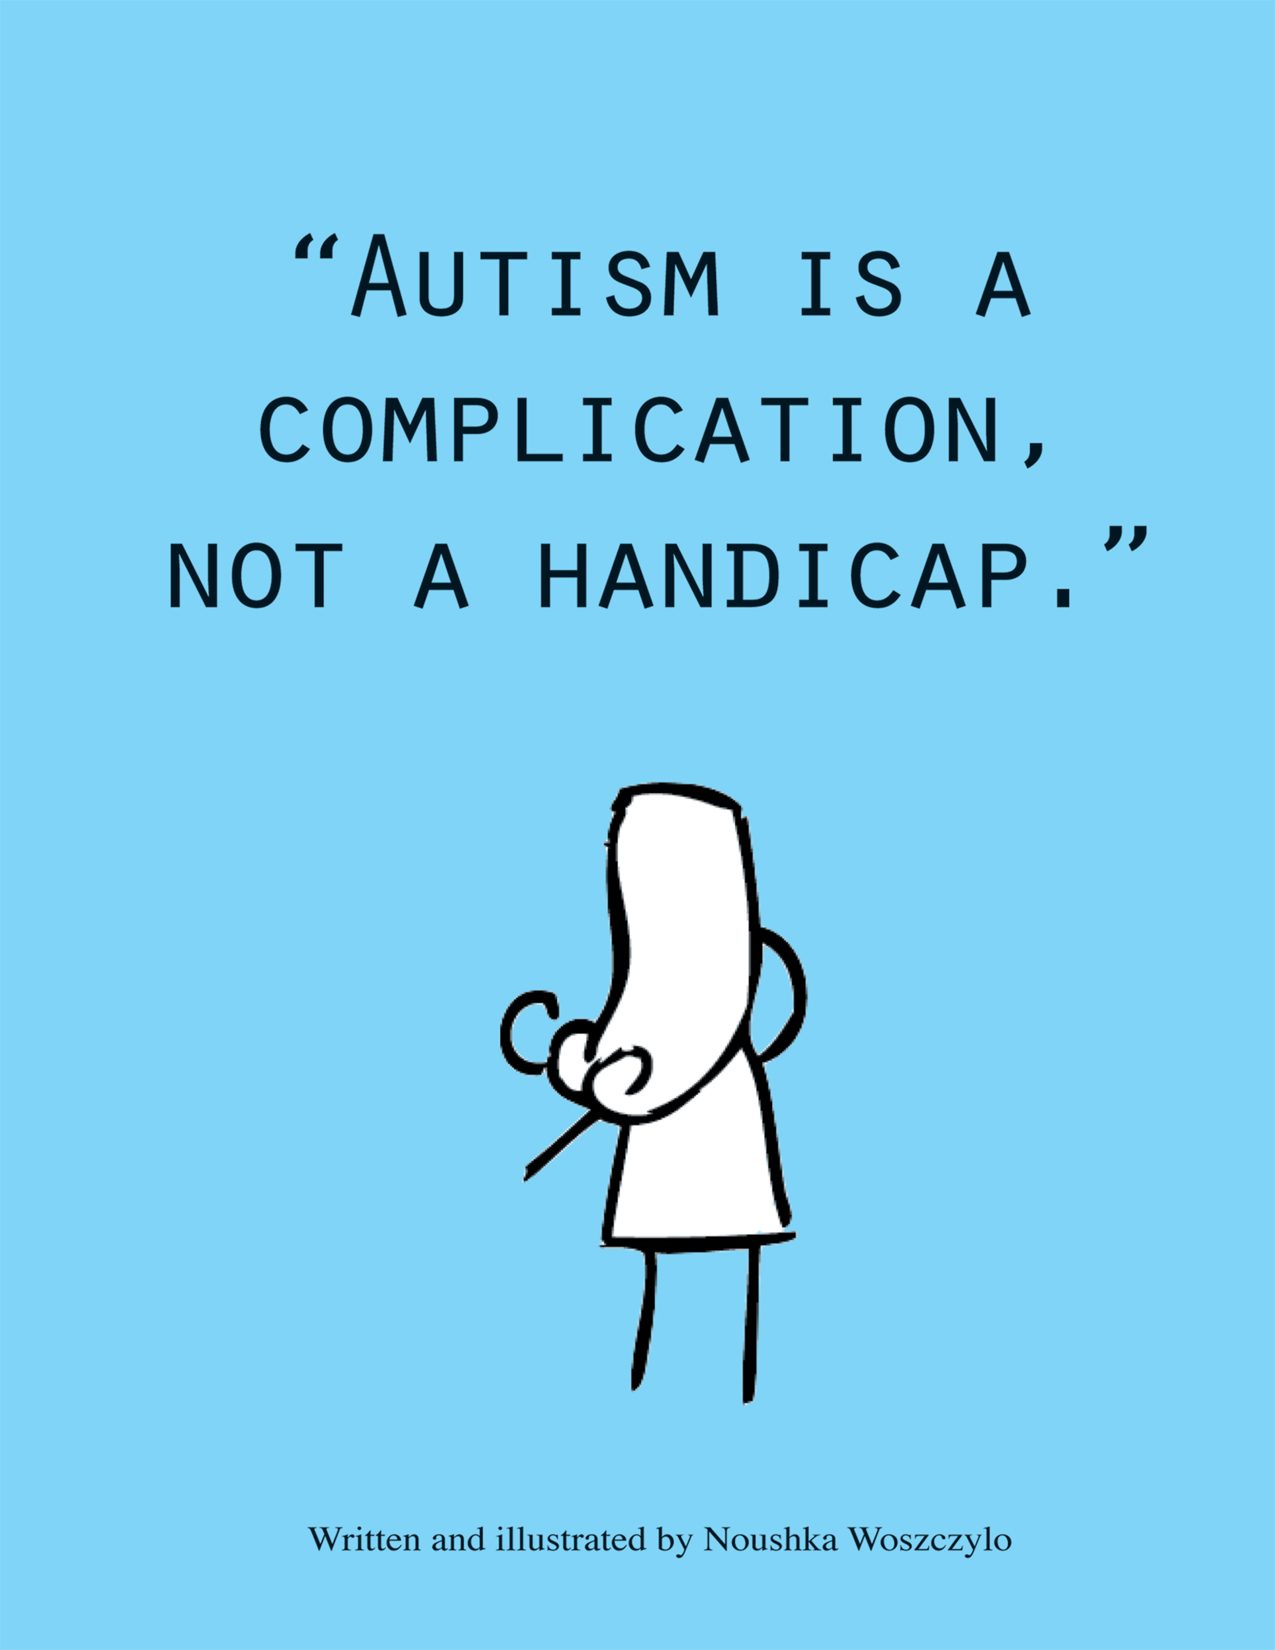 Autism is a complication, not a handicap